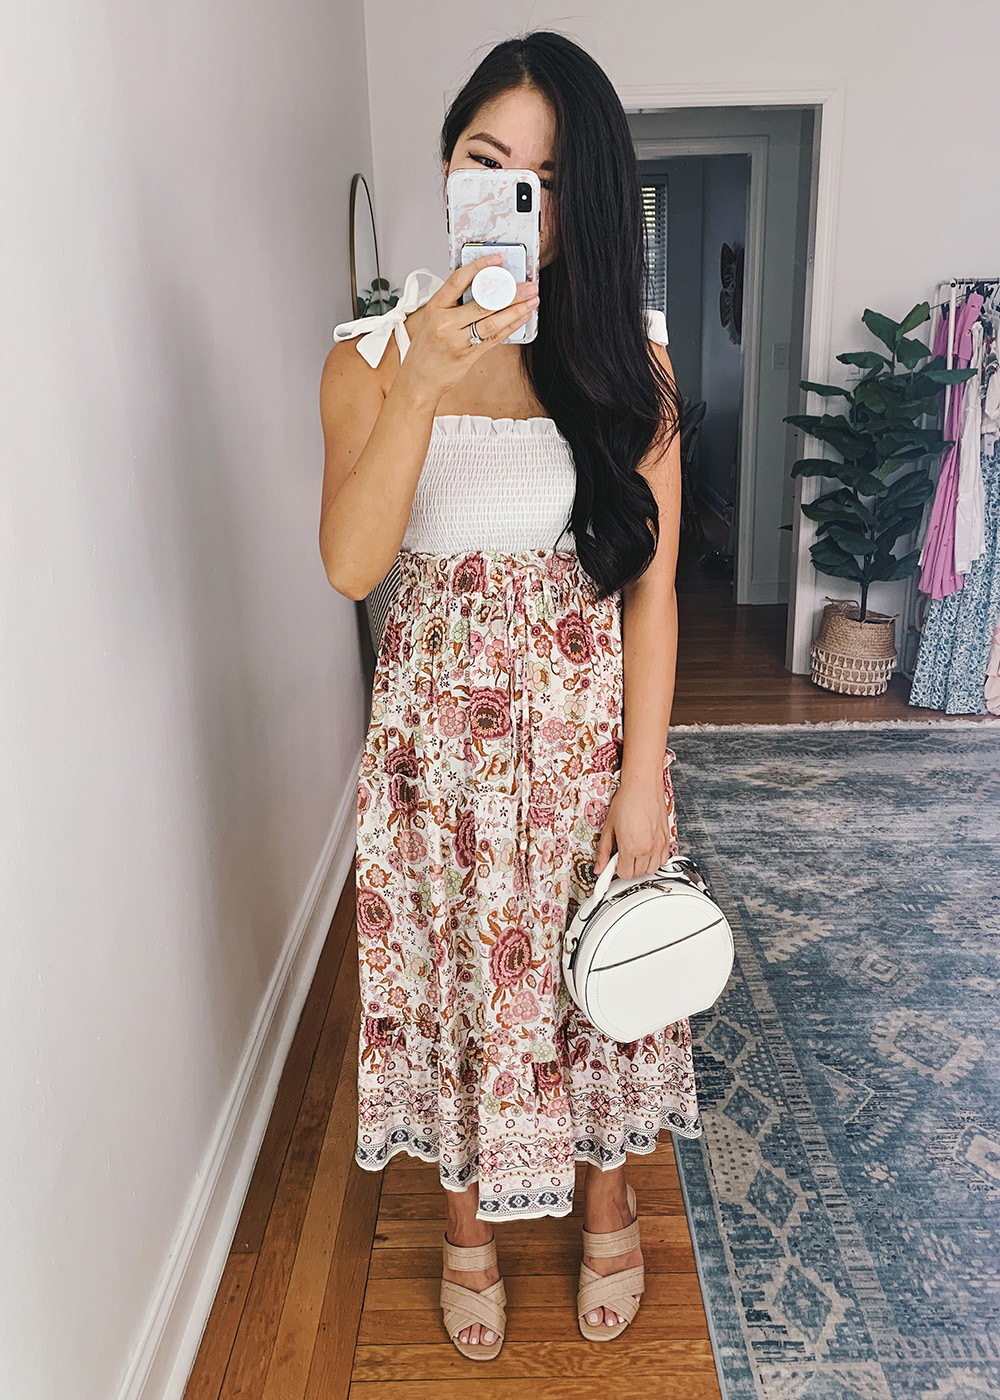 Summer Outfit for Women: White Tie Strap Crop Top, Pink Boho Midi Skirt, White Straw Circle Bag